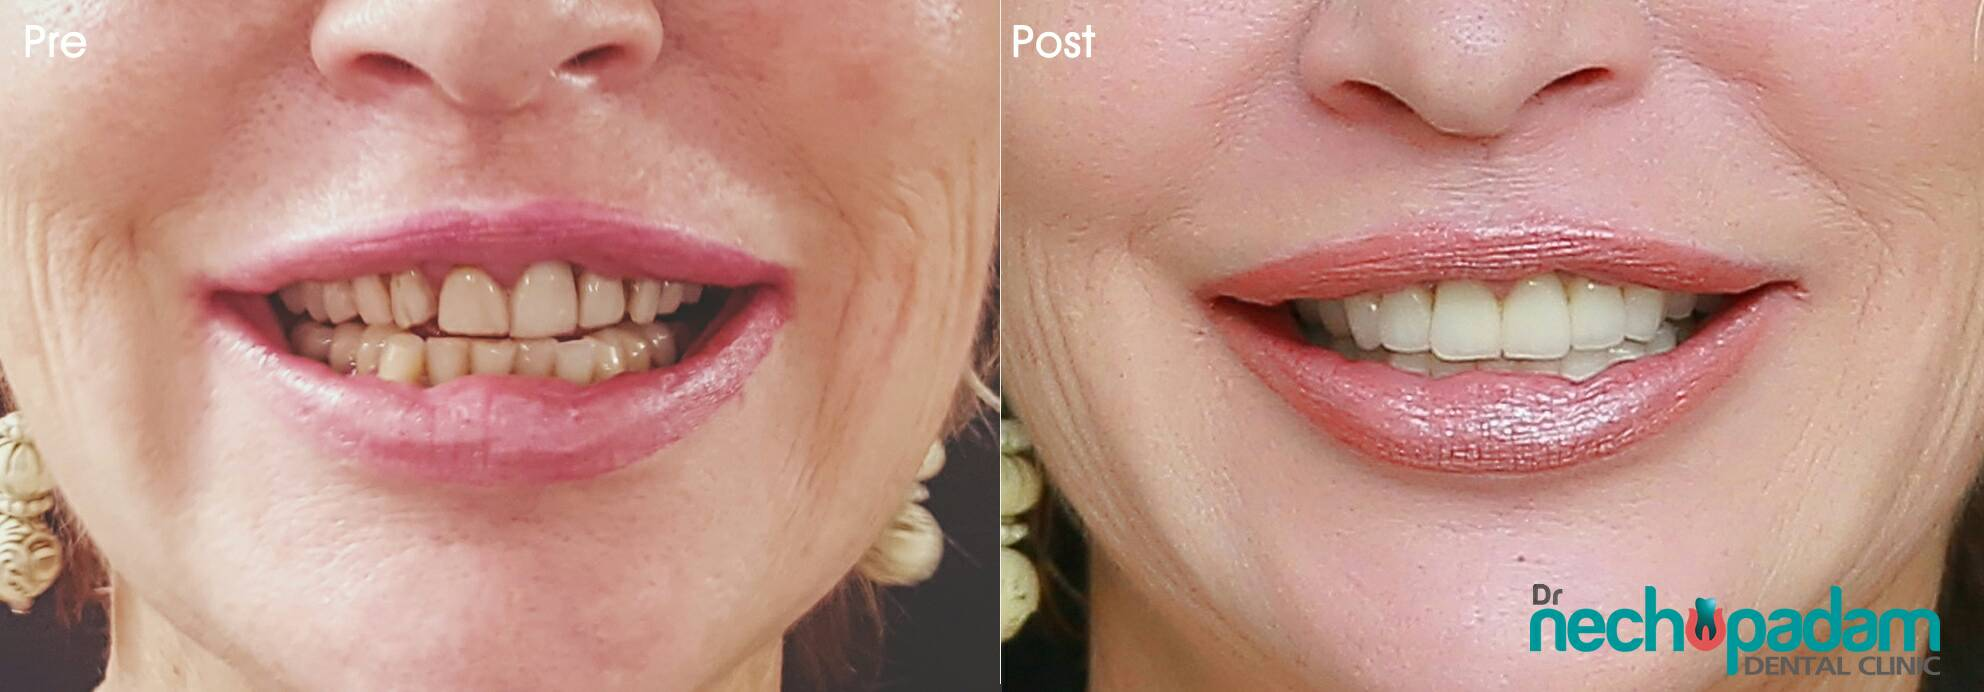 Dental clinic Clear Aligners, Invisalign and Hollywood Smiles